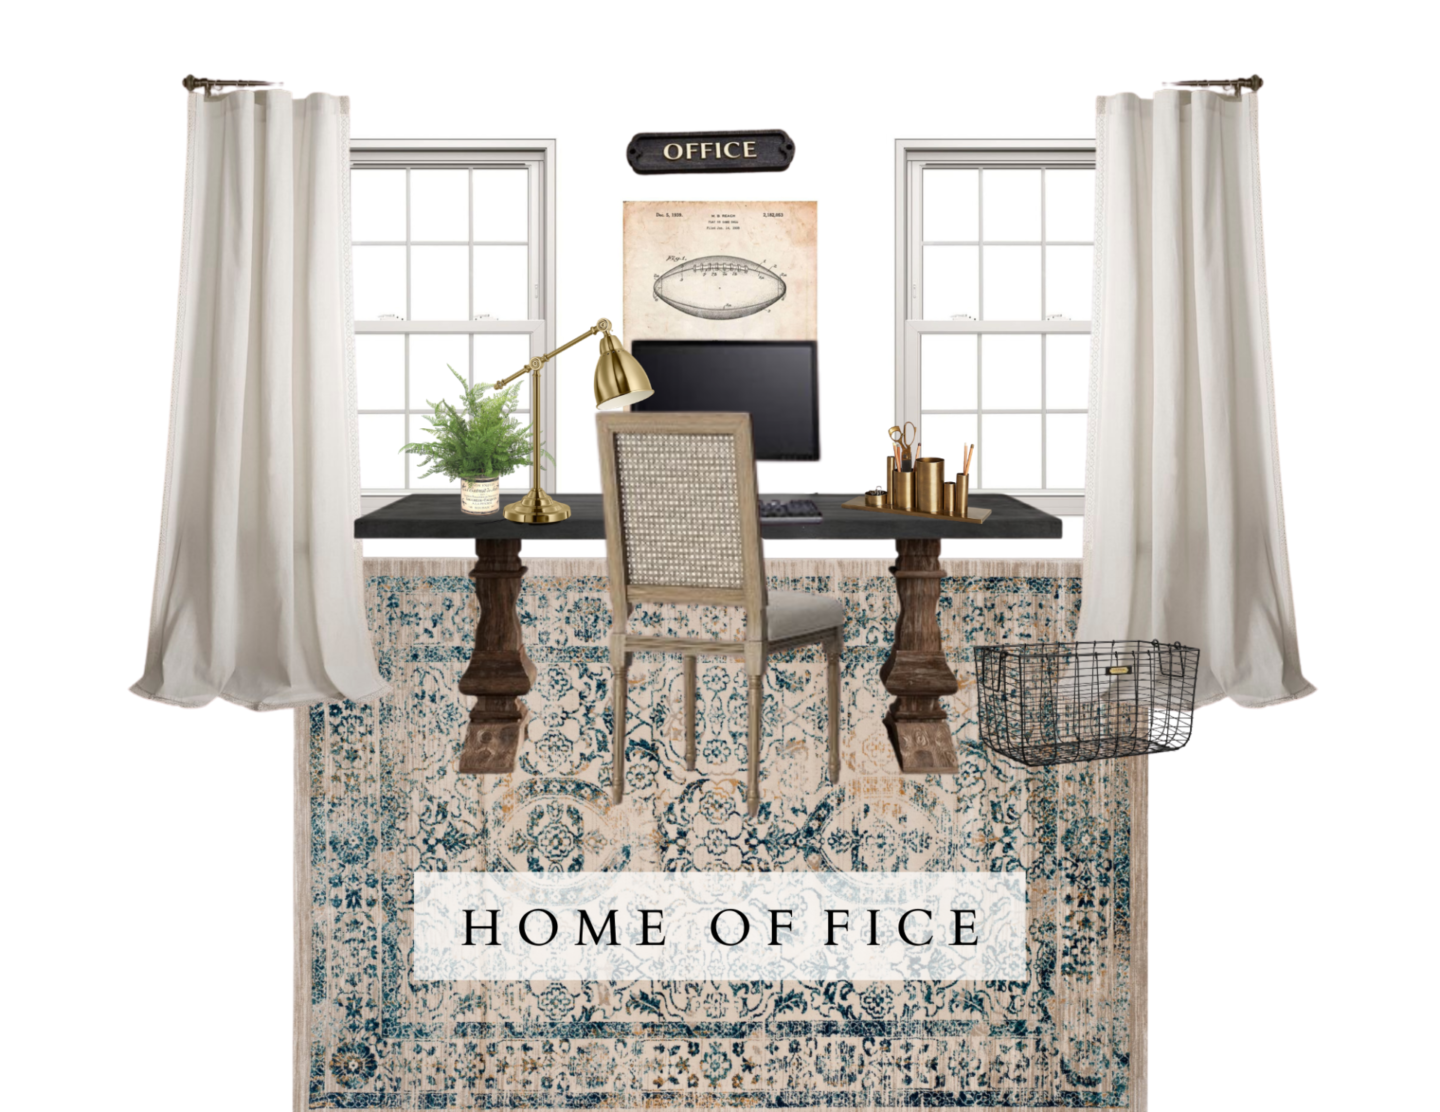 Create your Own Design Board by sheholdsdearly.com